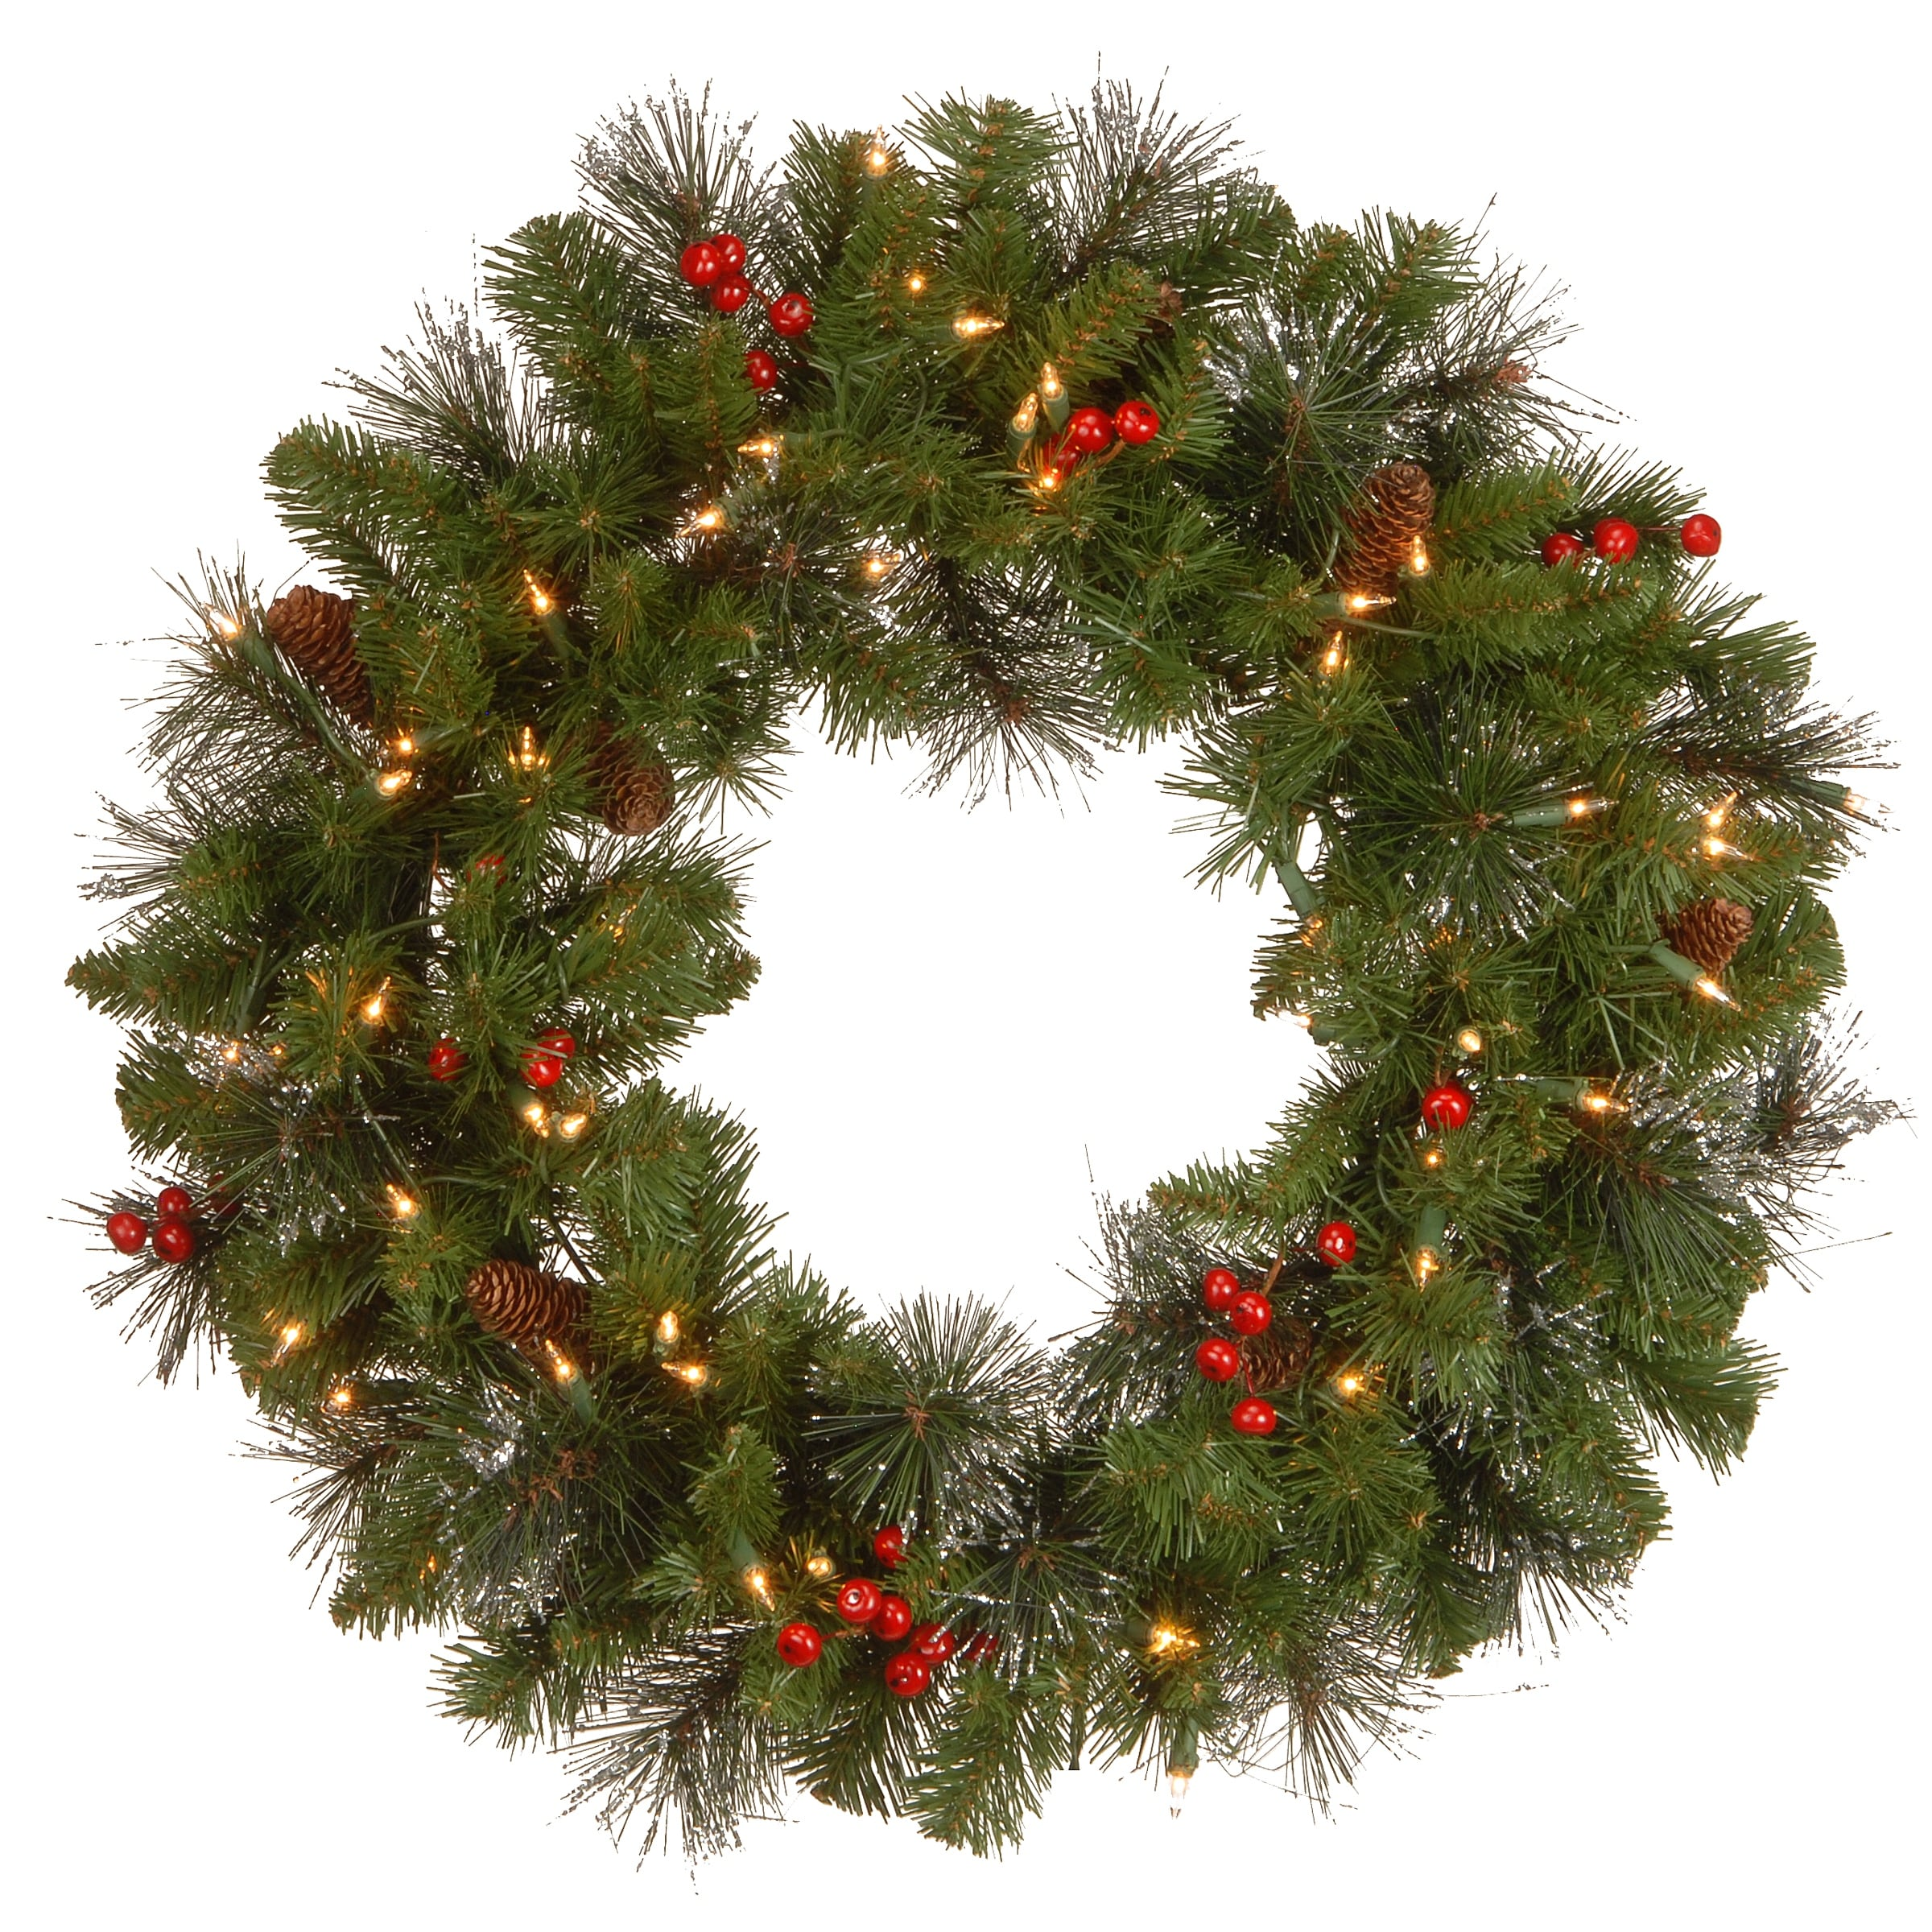 Prelit Christmas Wreath.24 Pre Lit Crestwood Spruce Artificial Christmas Wreath Clear Lights Green